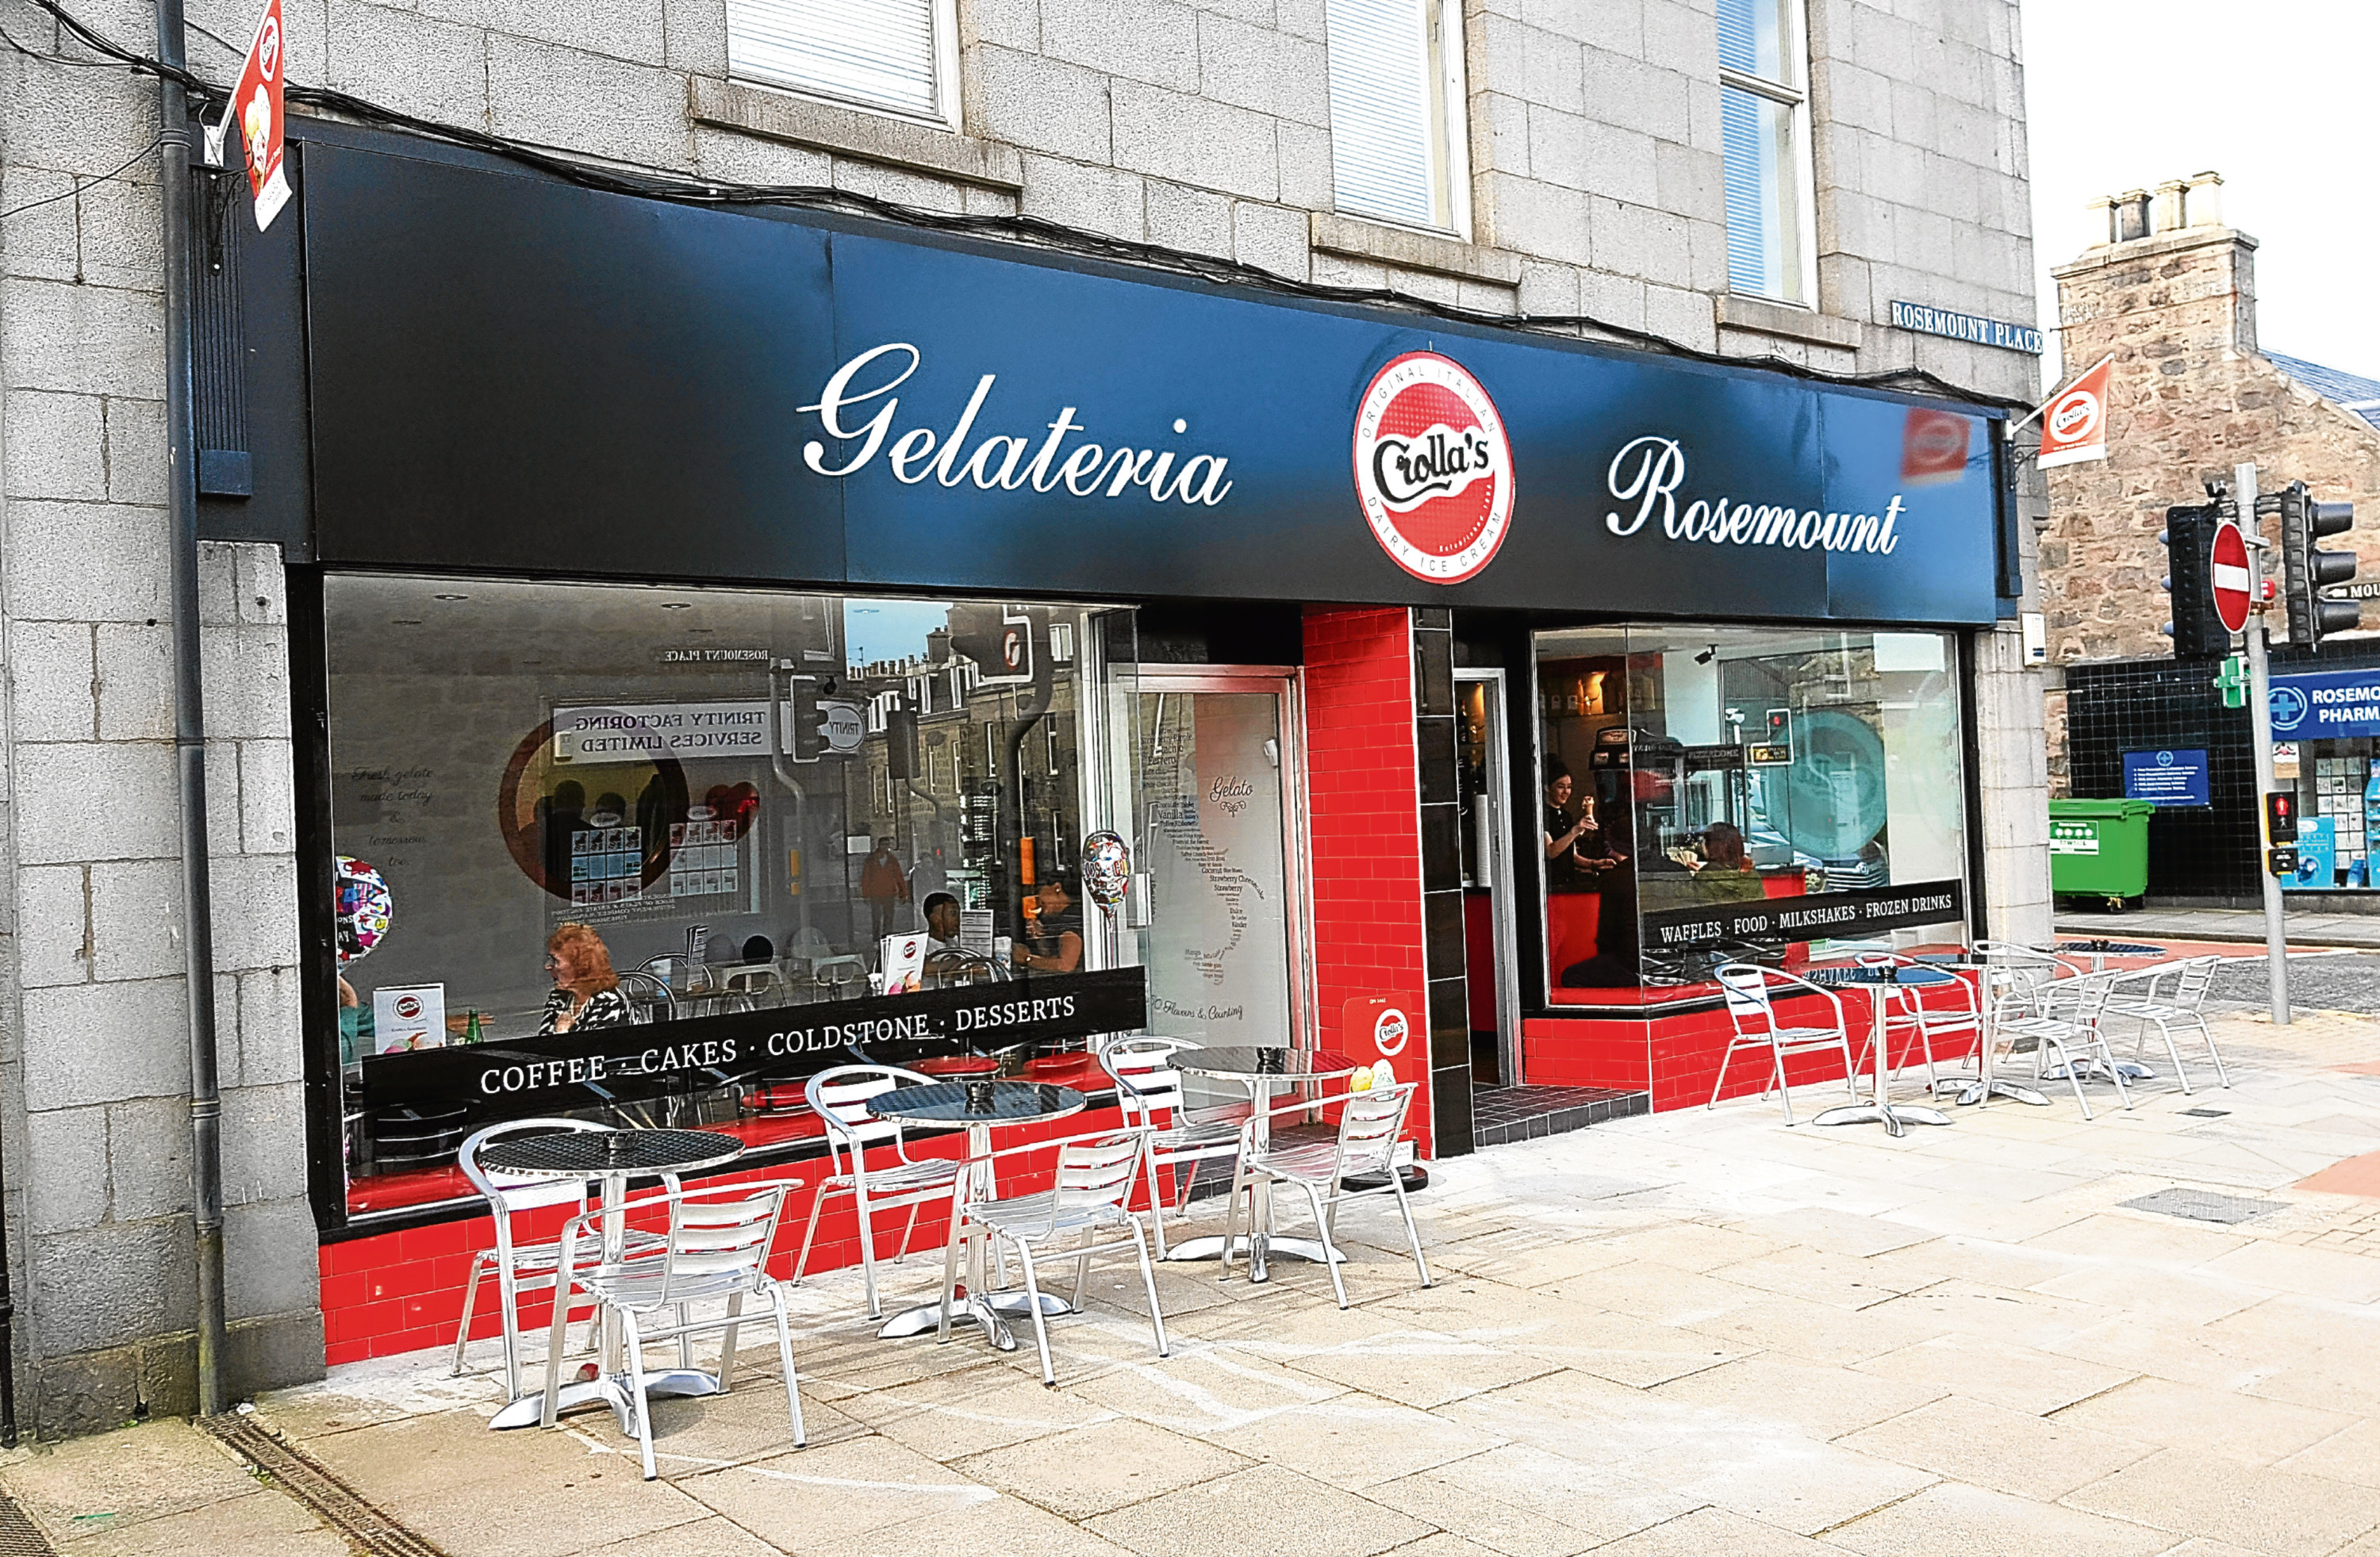 Crolla's Gelateria in Rosemount Place